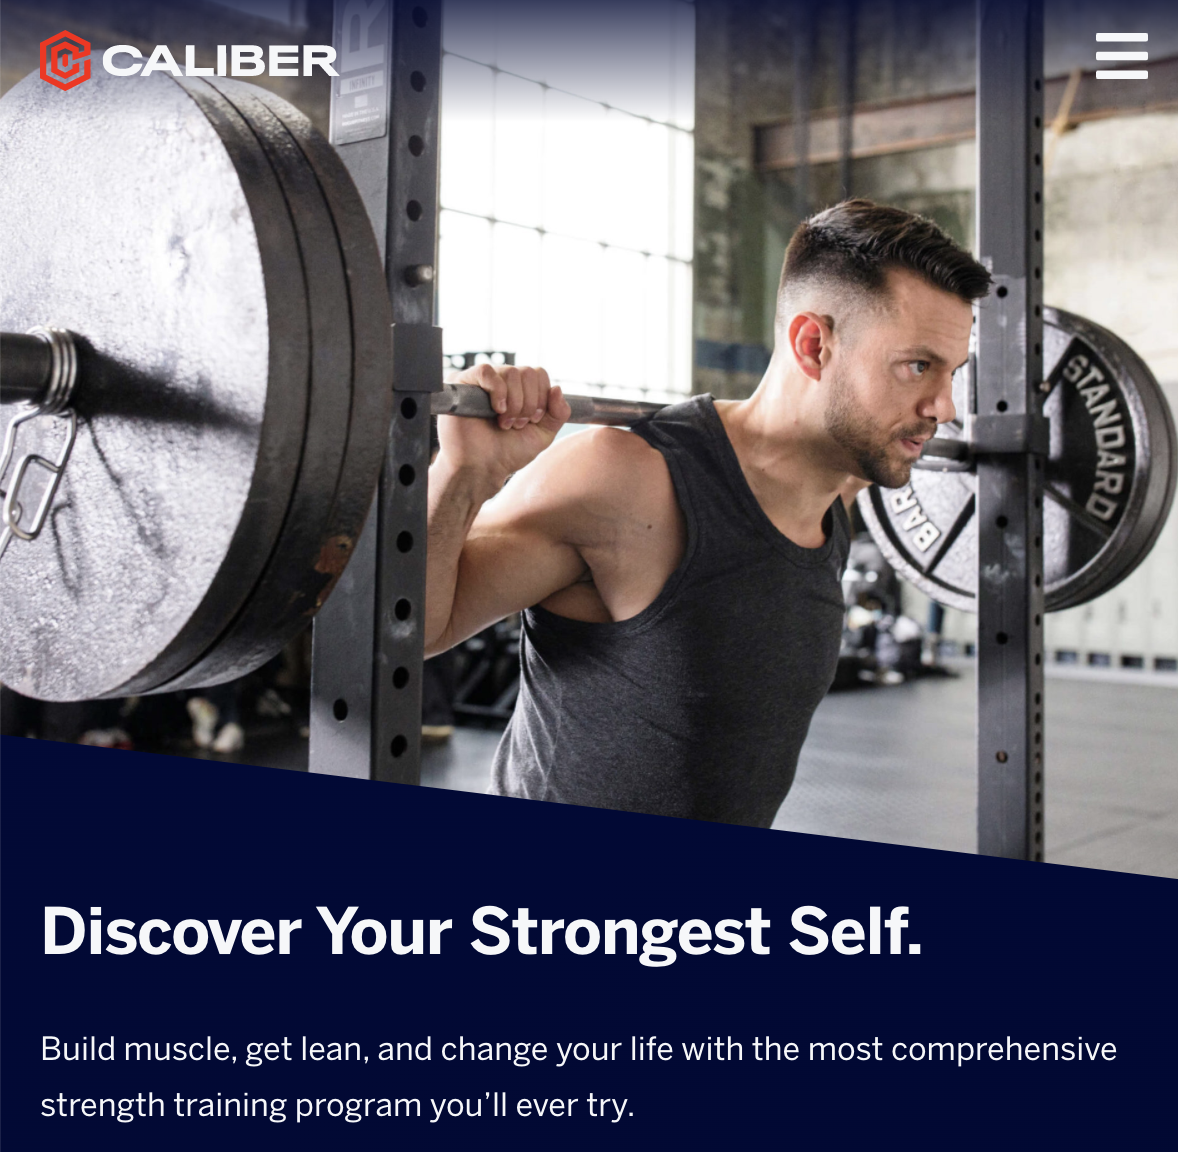 Caliber Fitness Nutrition Coaching Bark Profile And Reviews